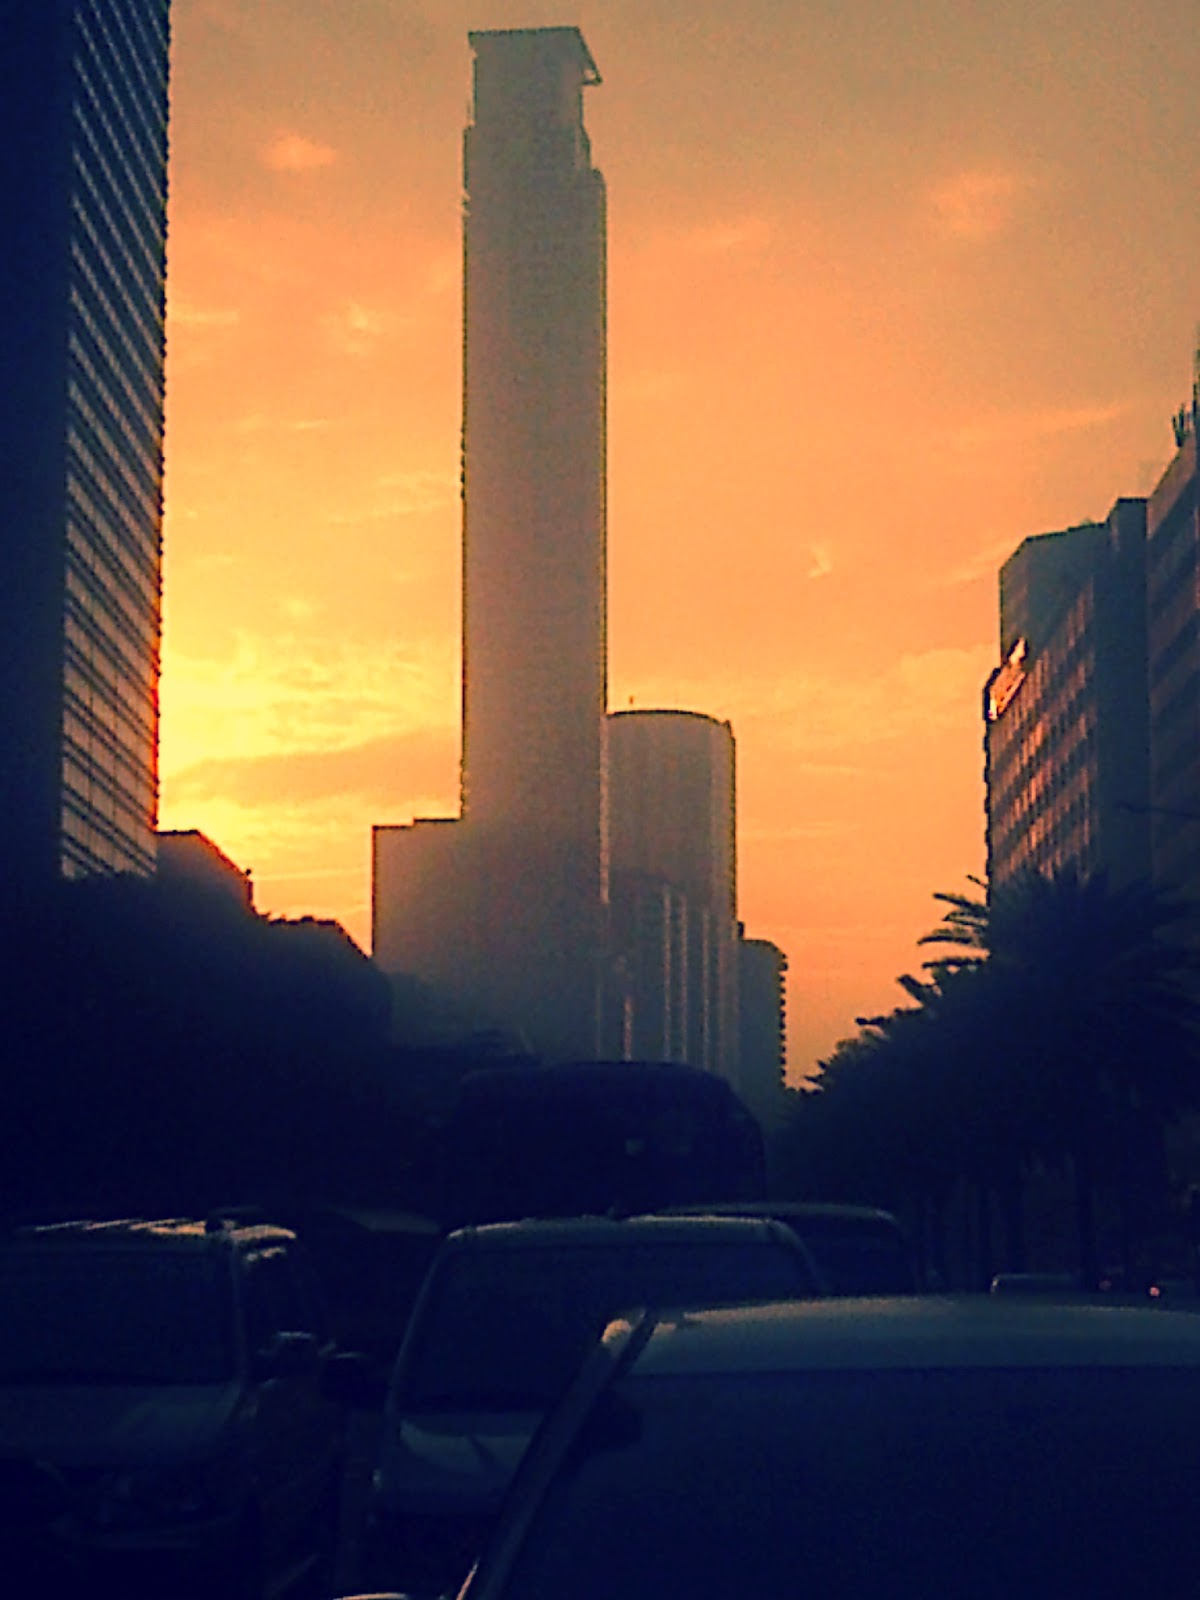 sunrise at Ayala, Makati